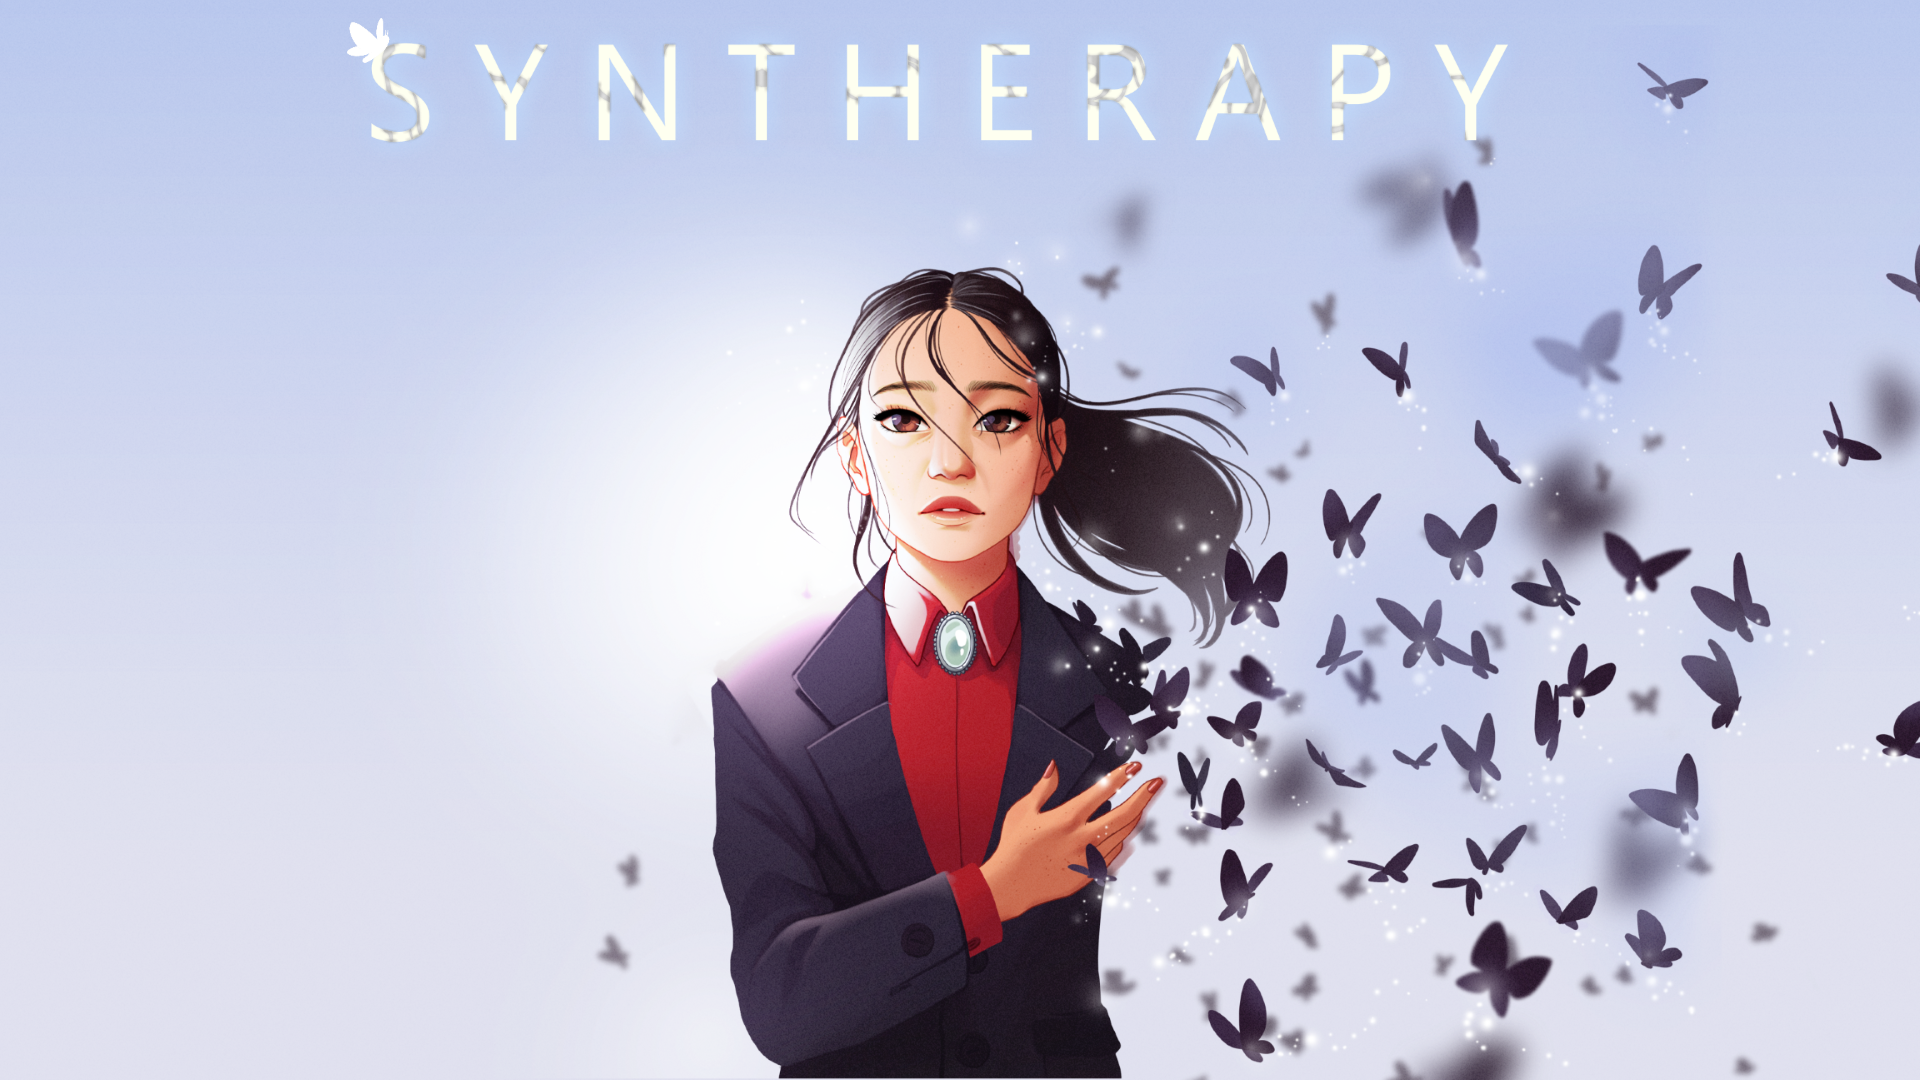 syntherapy_wallpaper